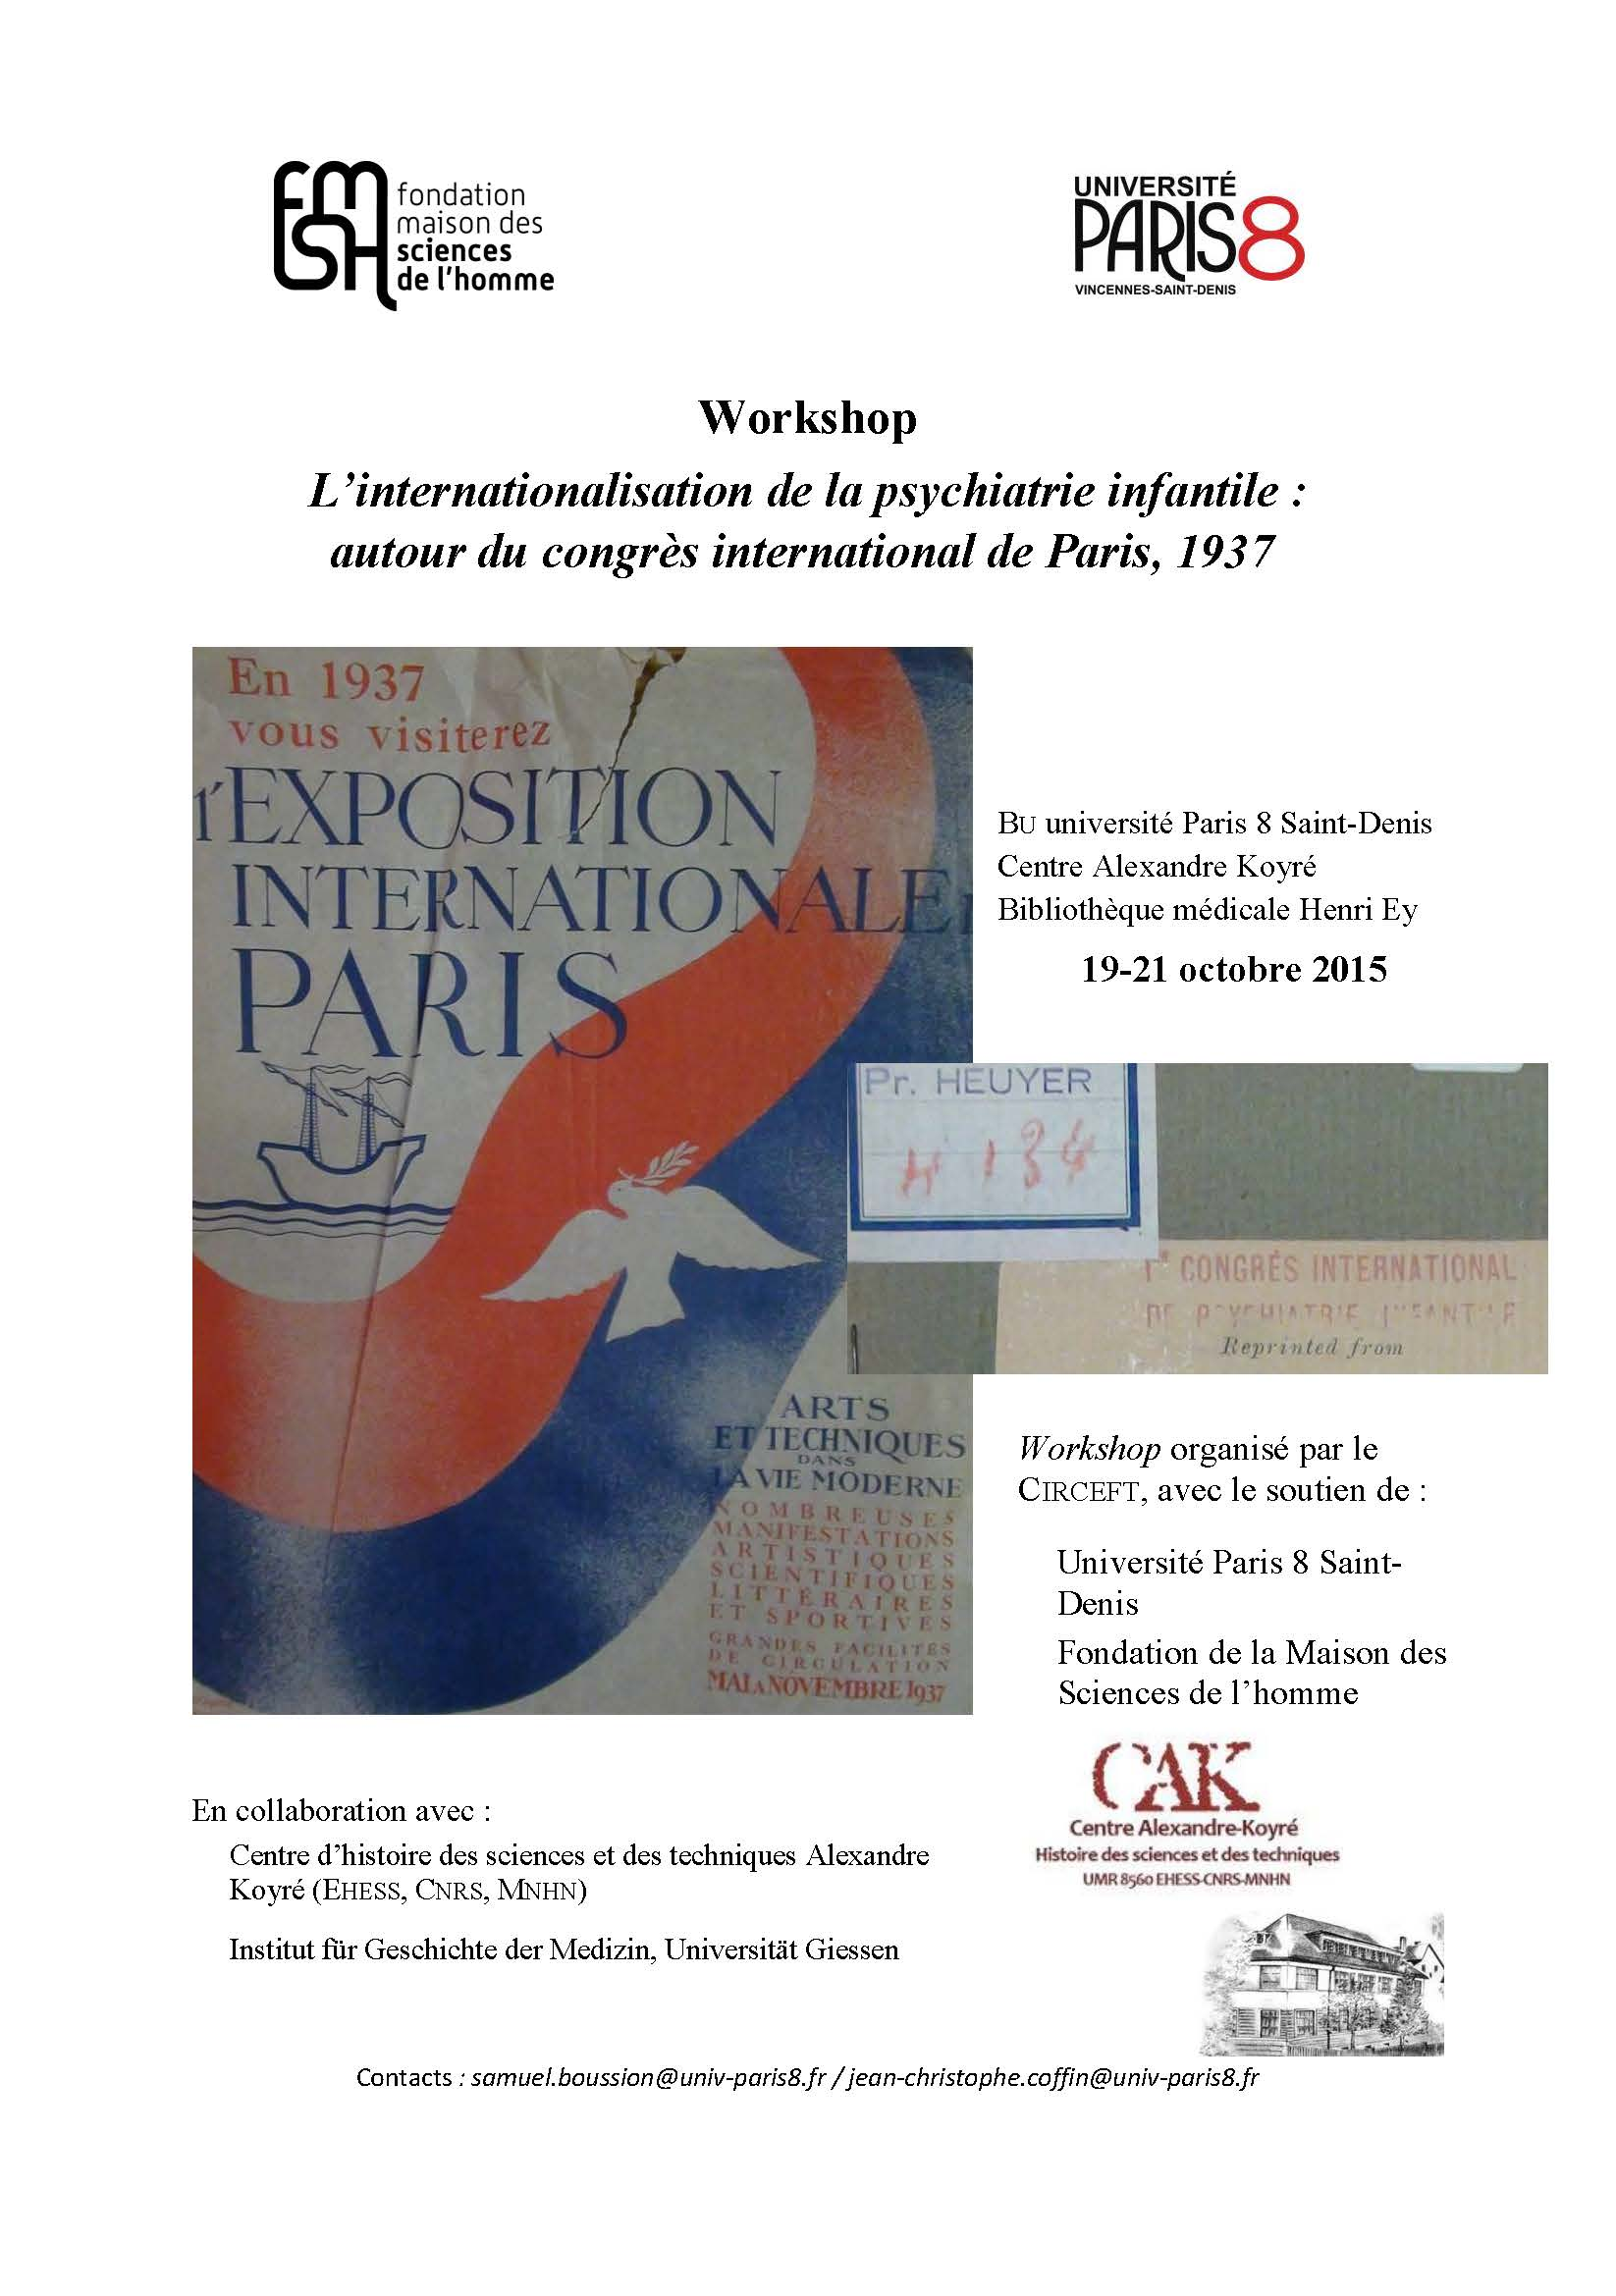 Workshop : L'internationalisation de la psychiatrie infantile